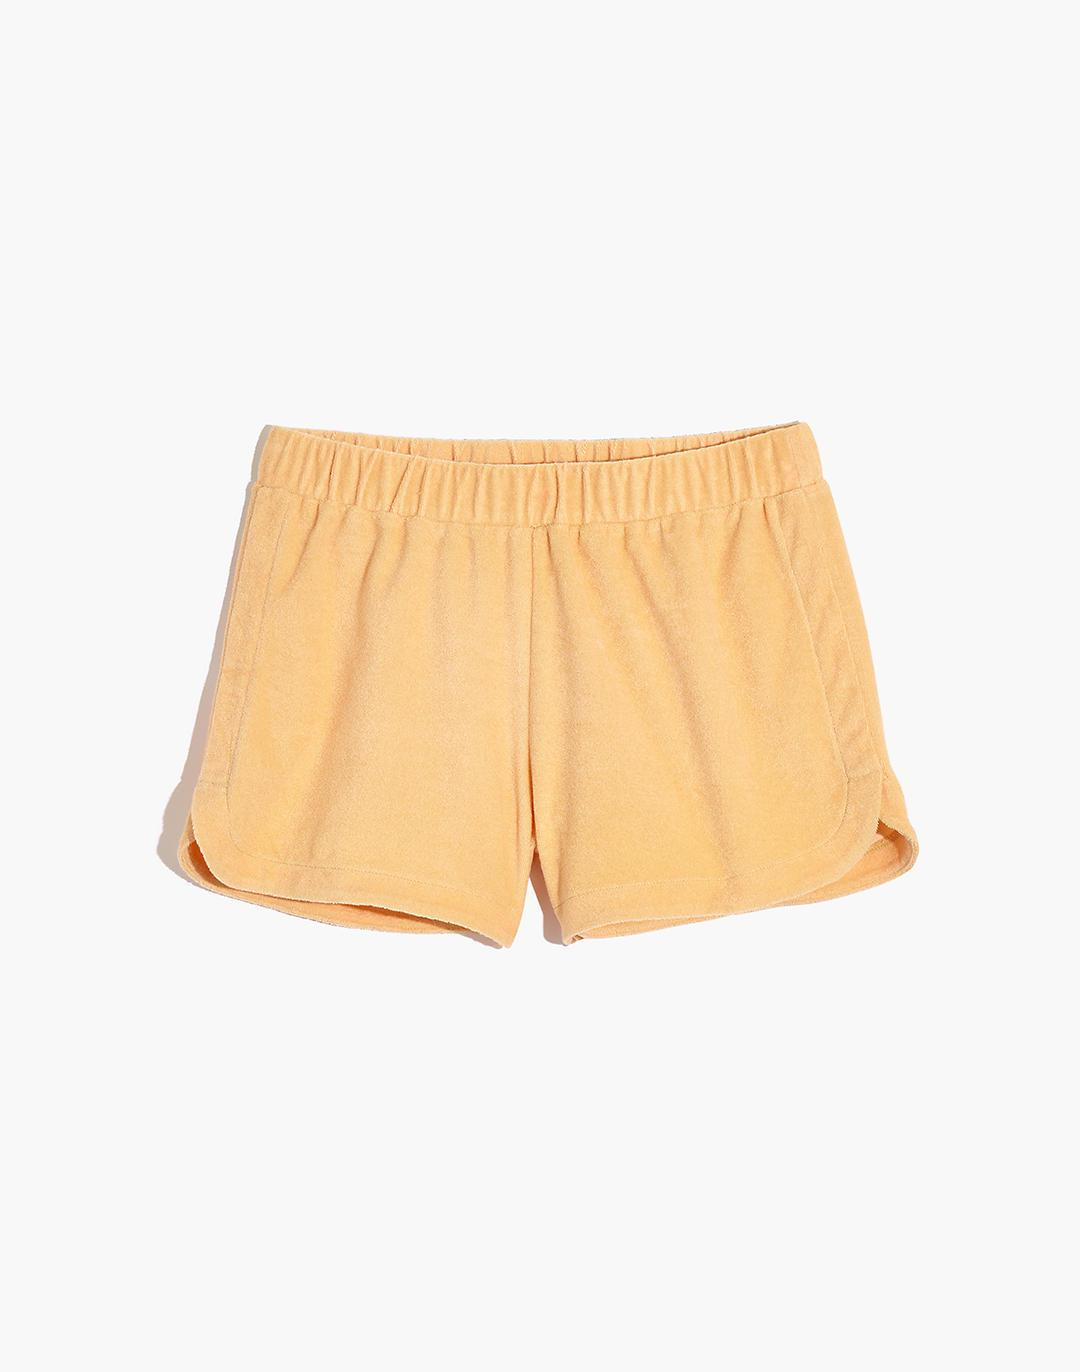 MWL Retroterry Dolphin Shorts 3